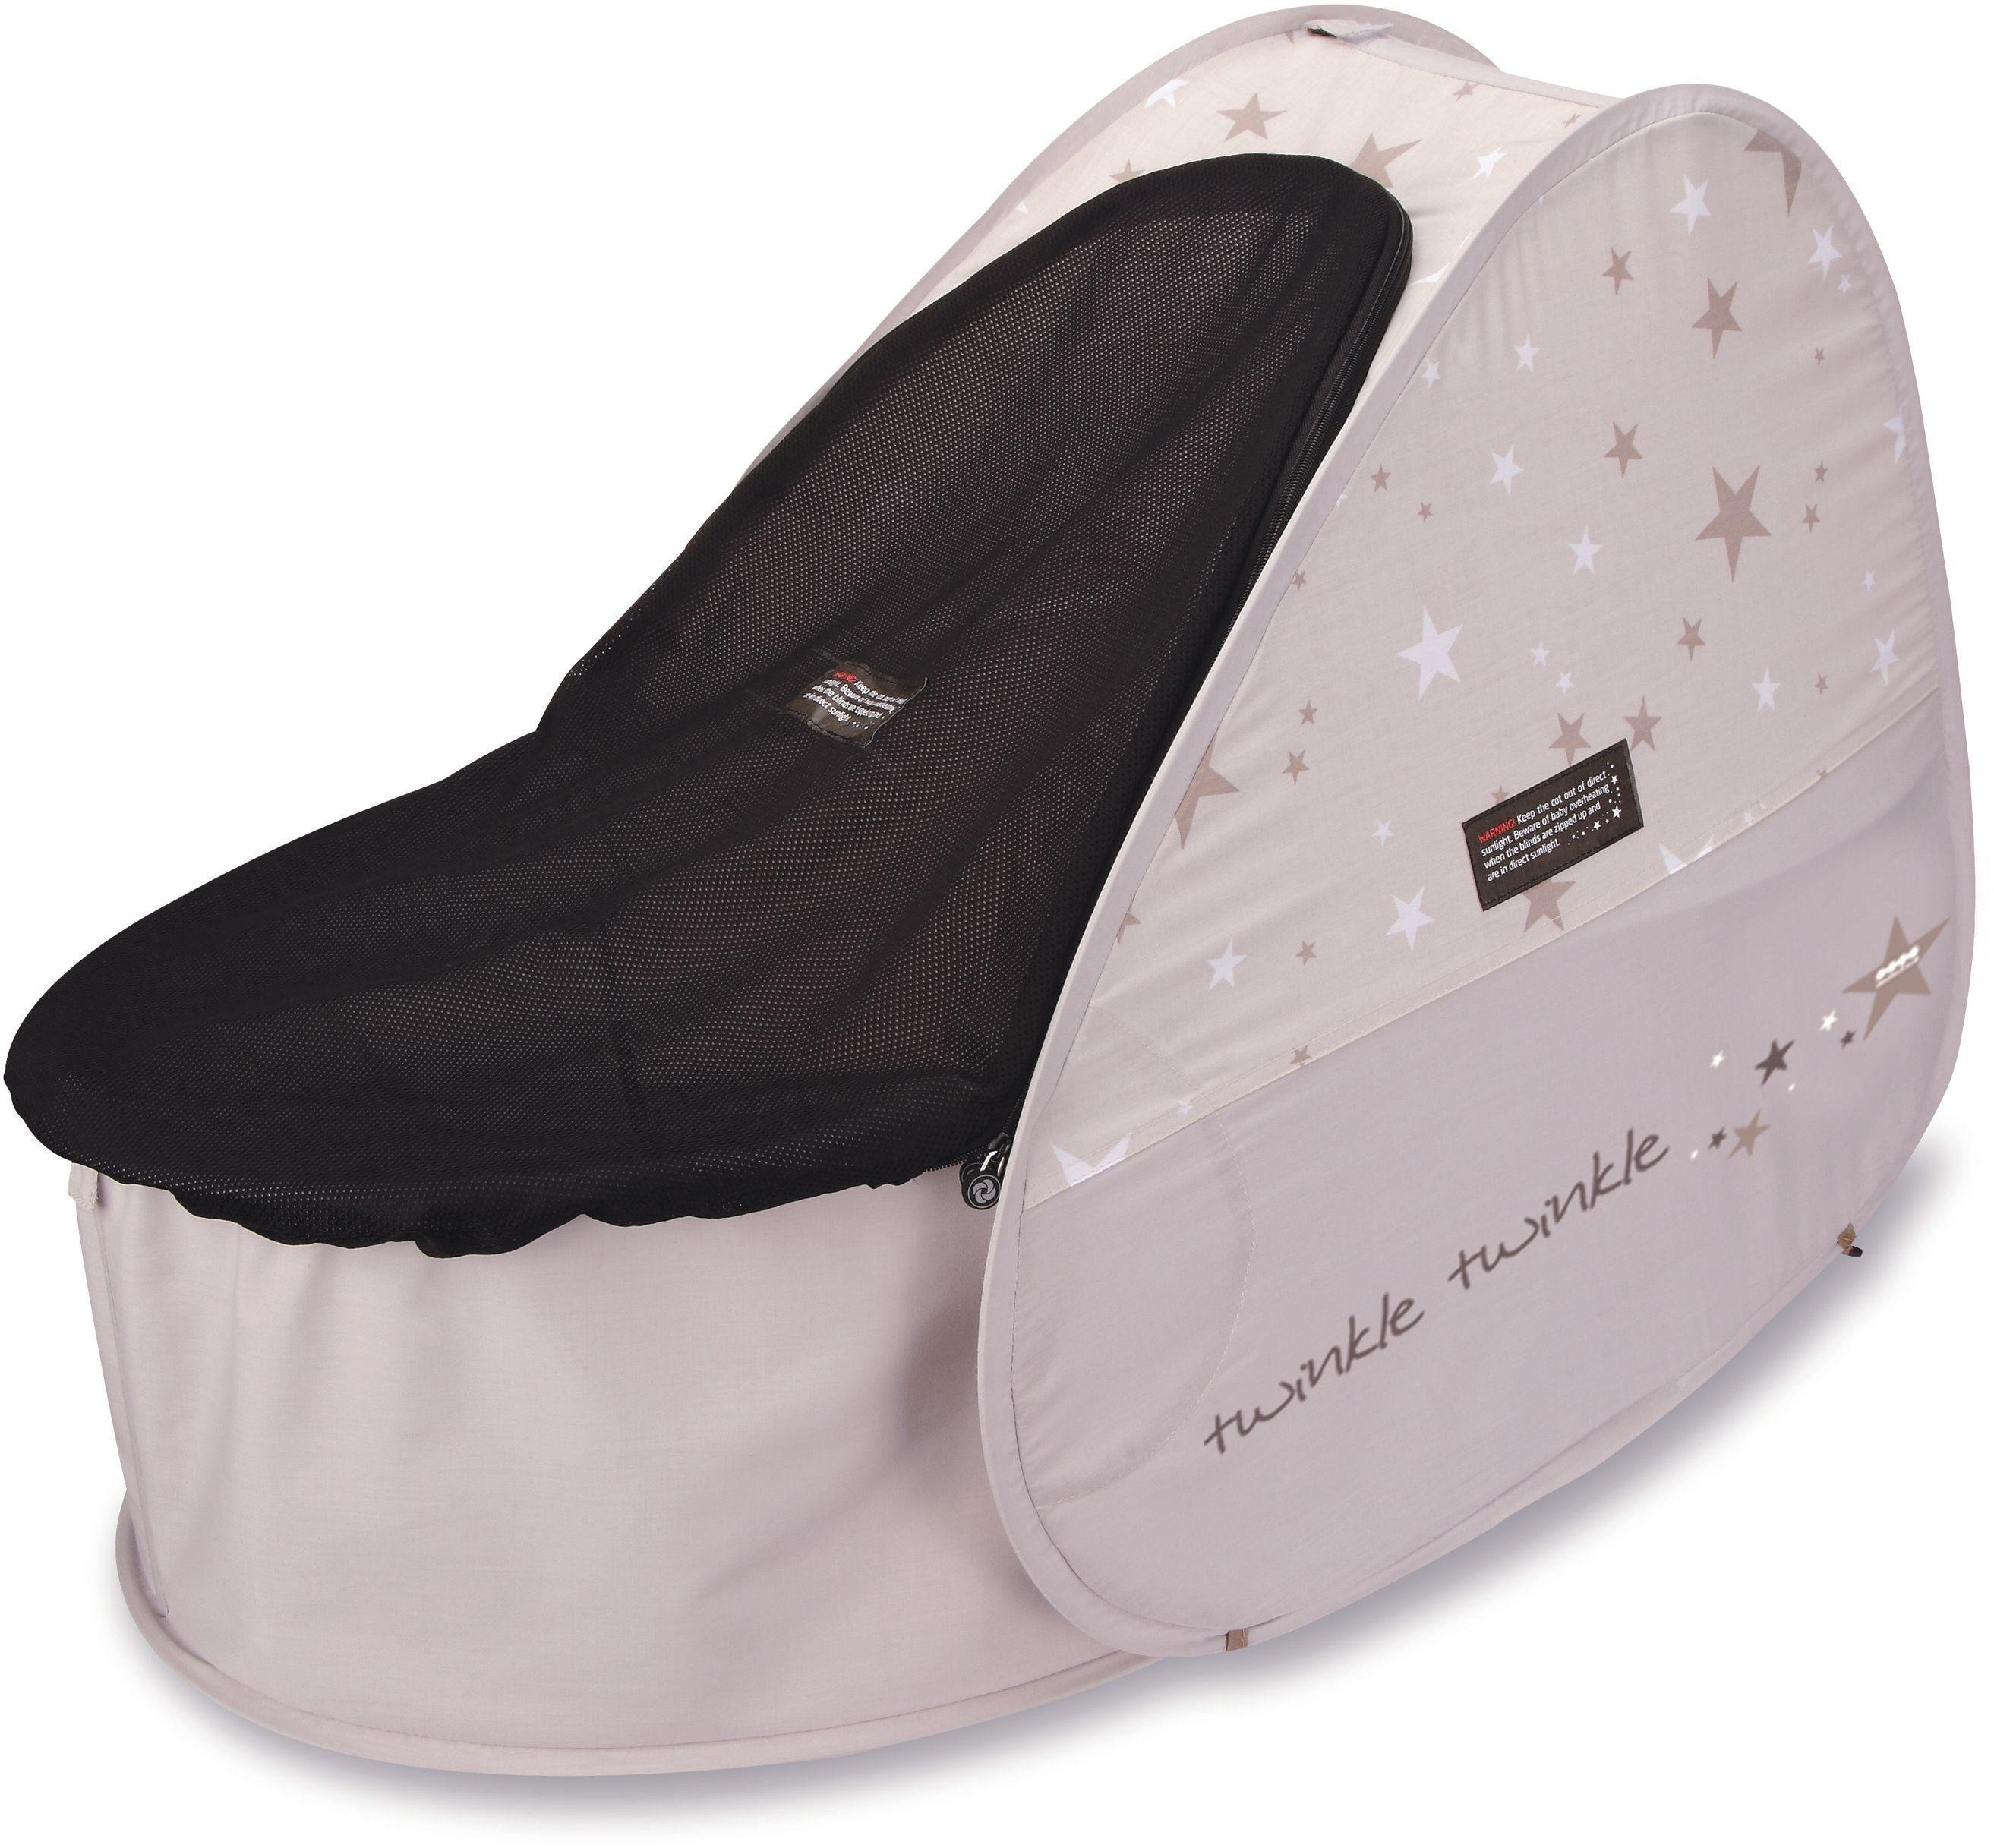 Image of Koo-di - Pop Up Sun and Sleep - Travel Bassinet